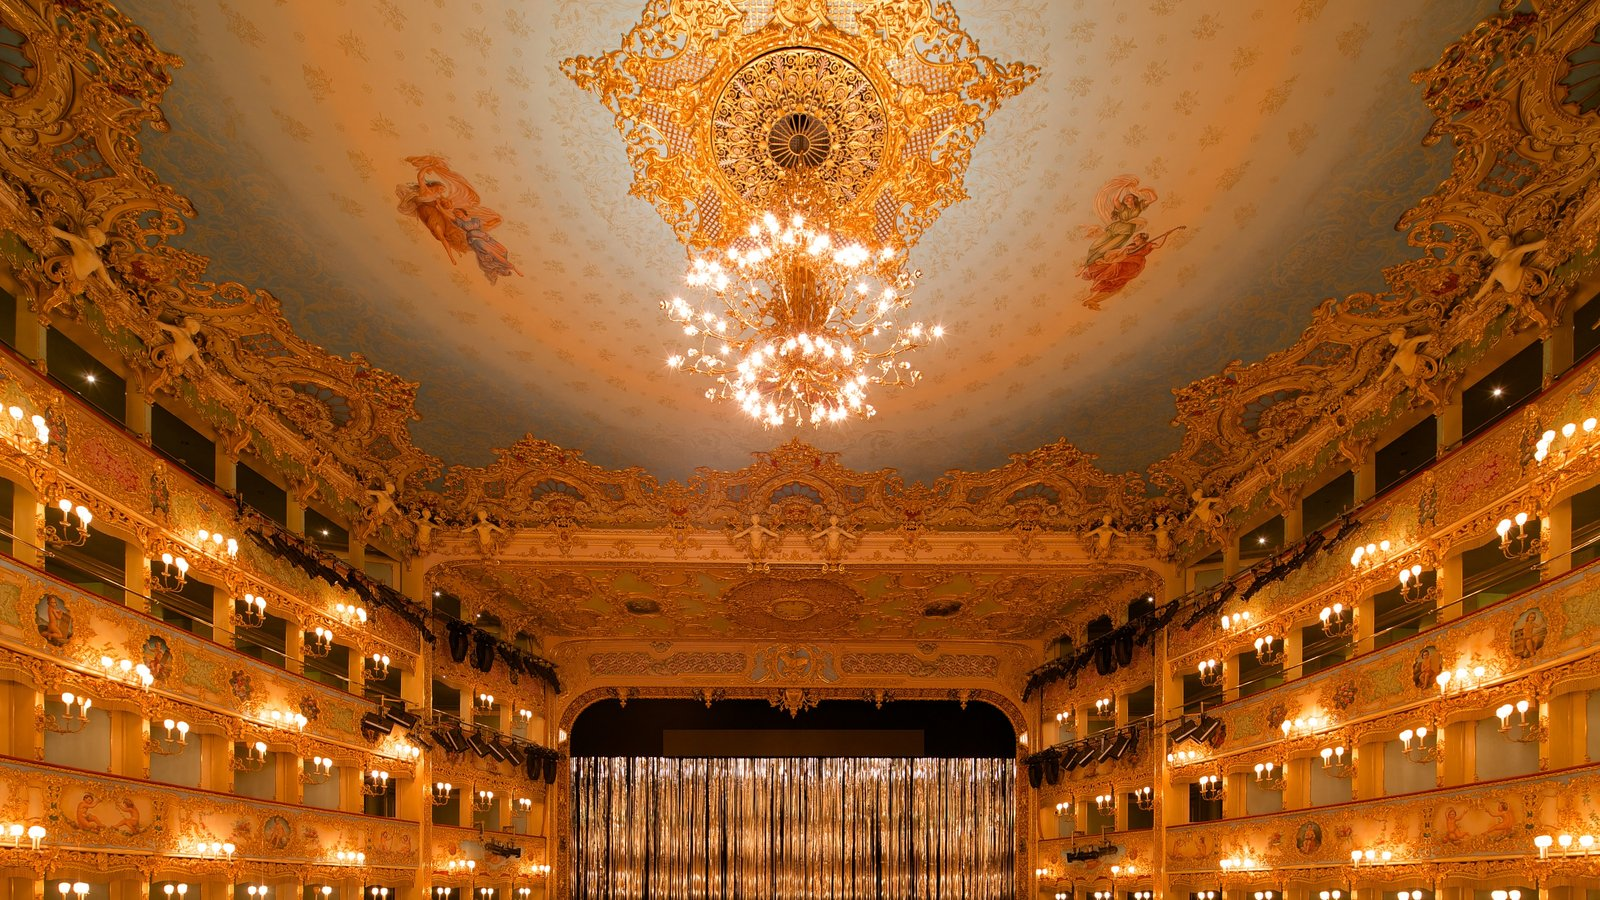 La Fenice Opera House showing heritage architecture, interior views and theater scenes